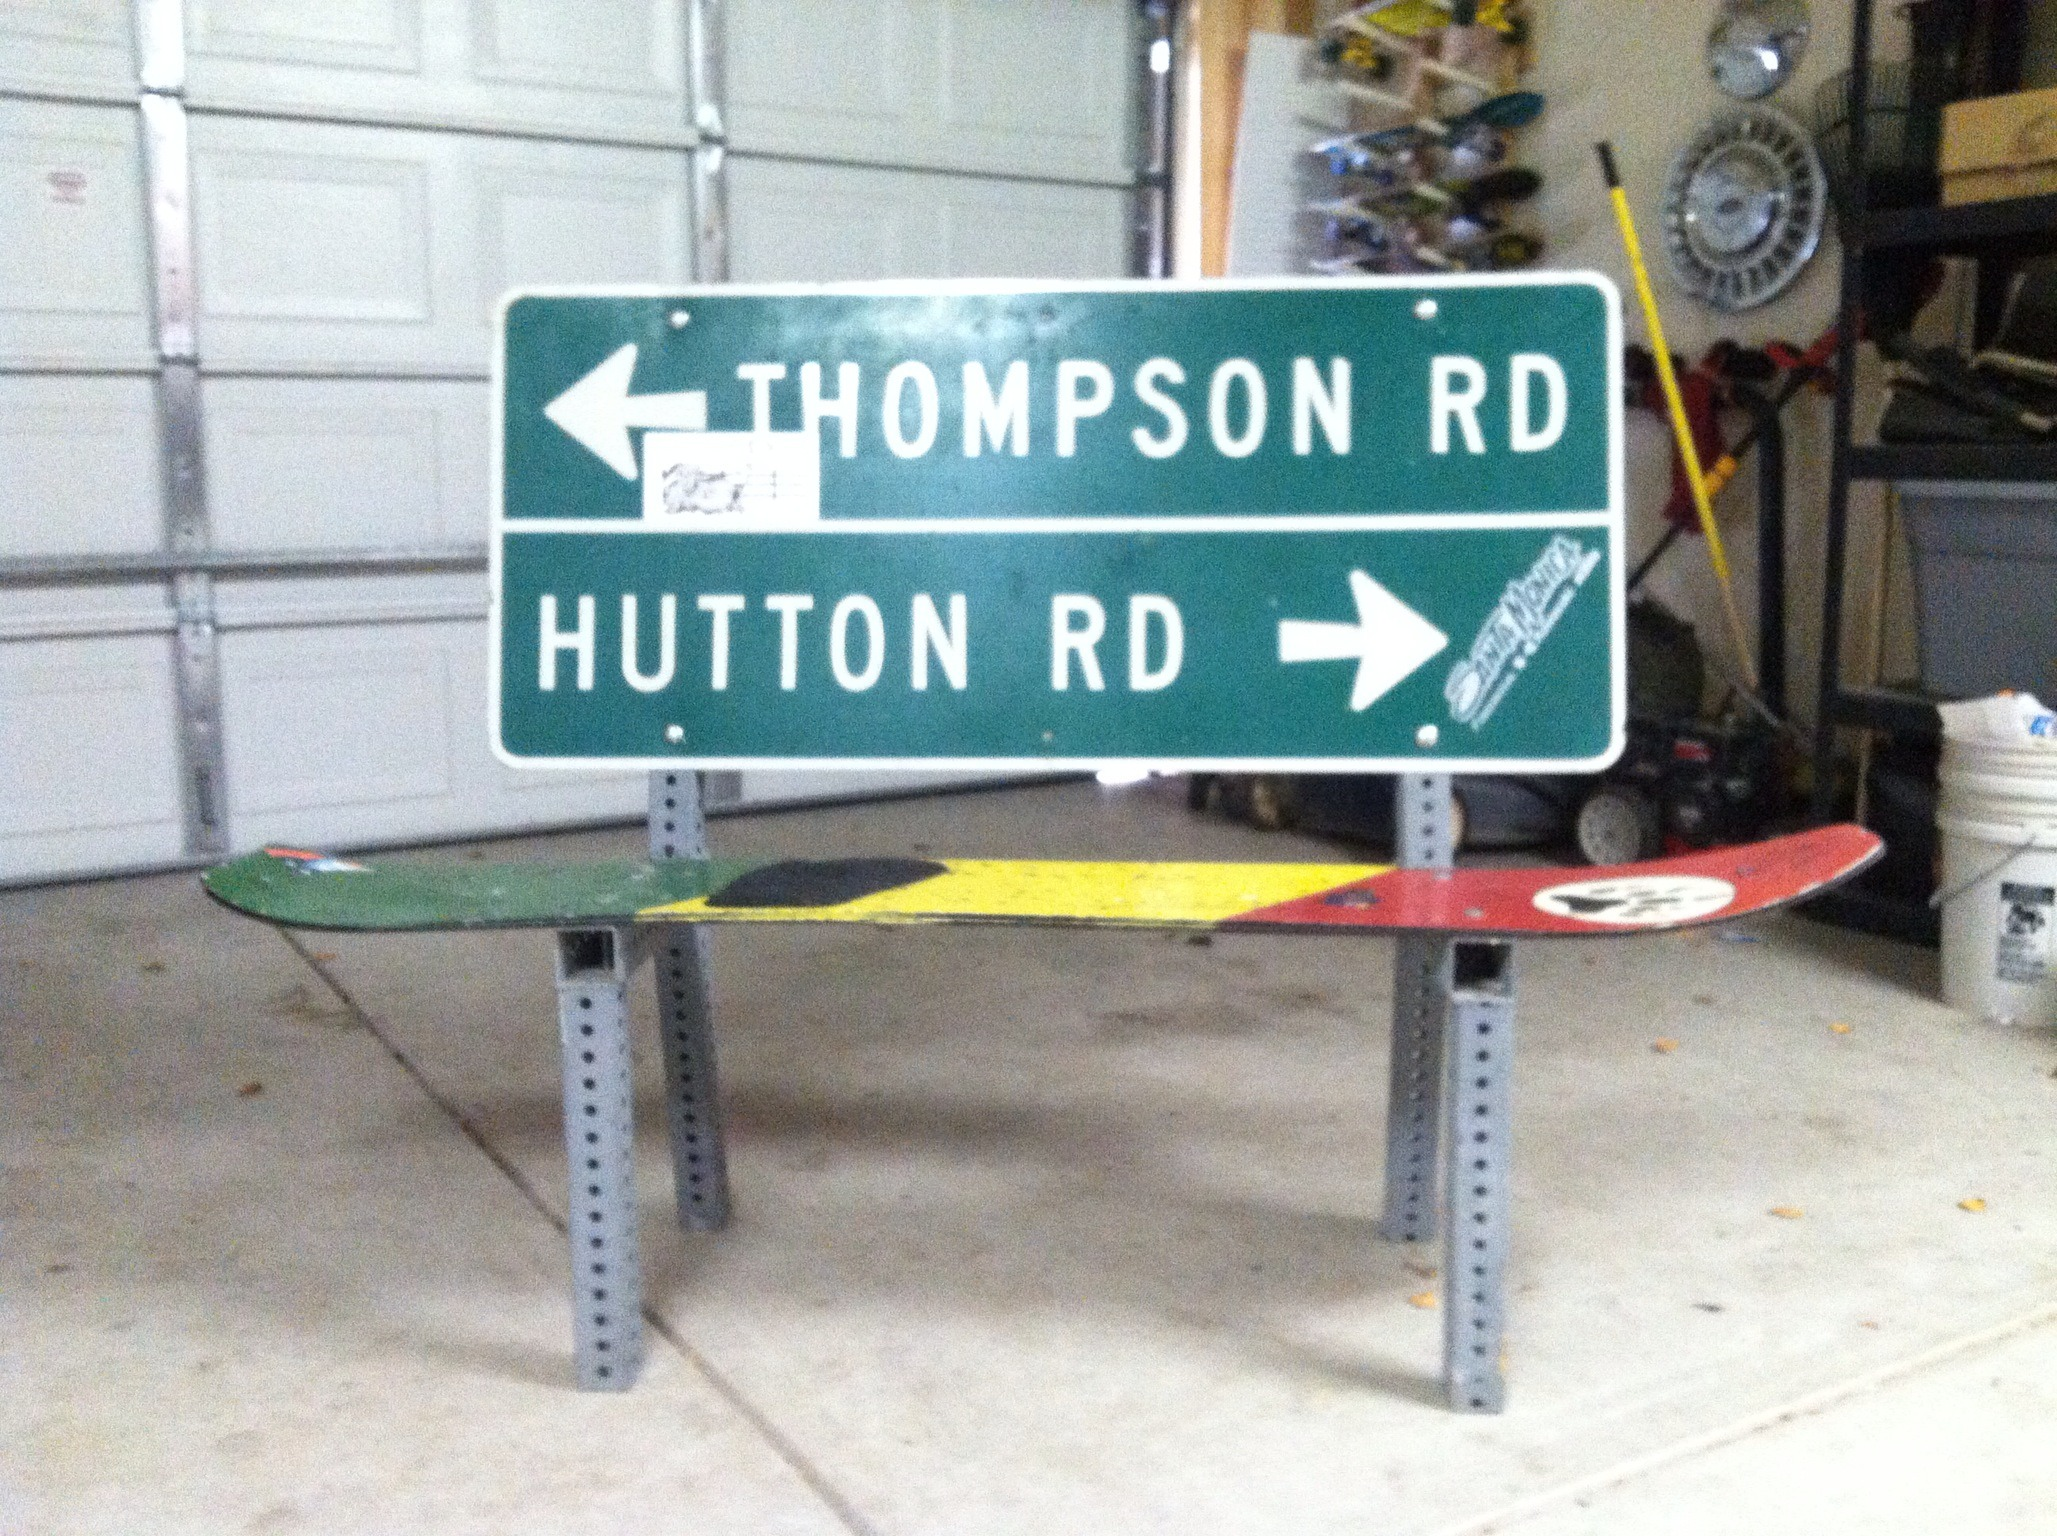 Picture of Road Sign/Snowboard Bench